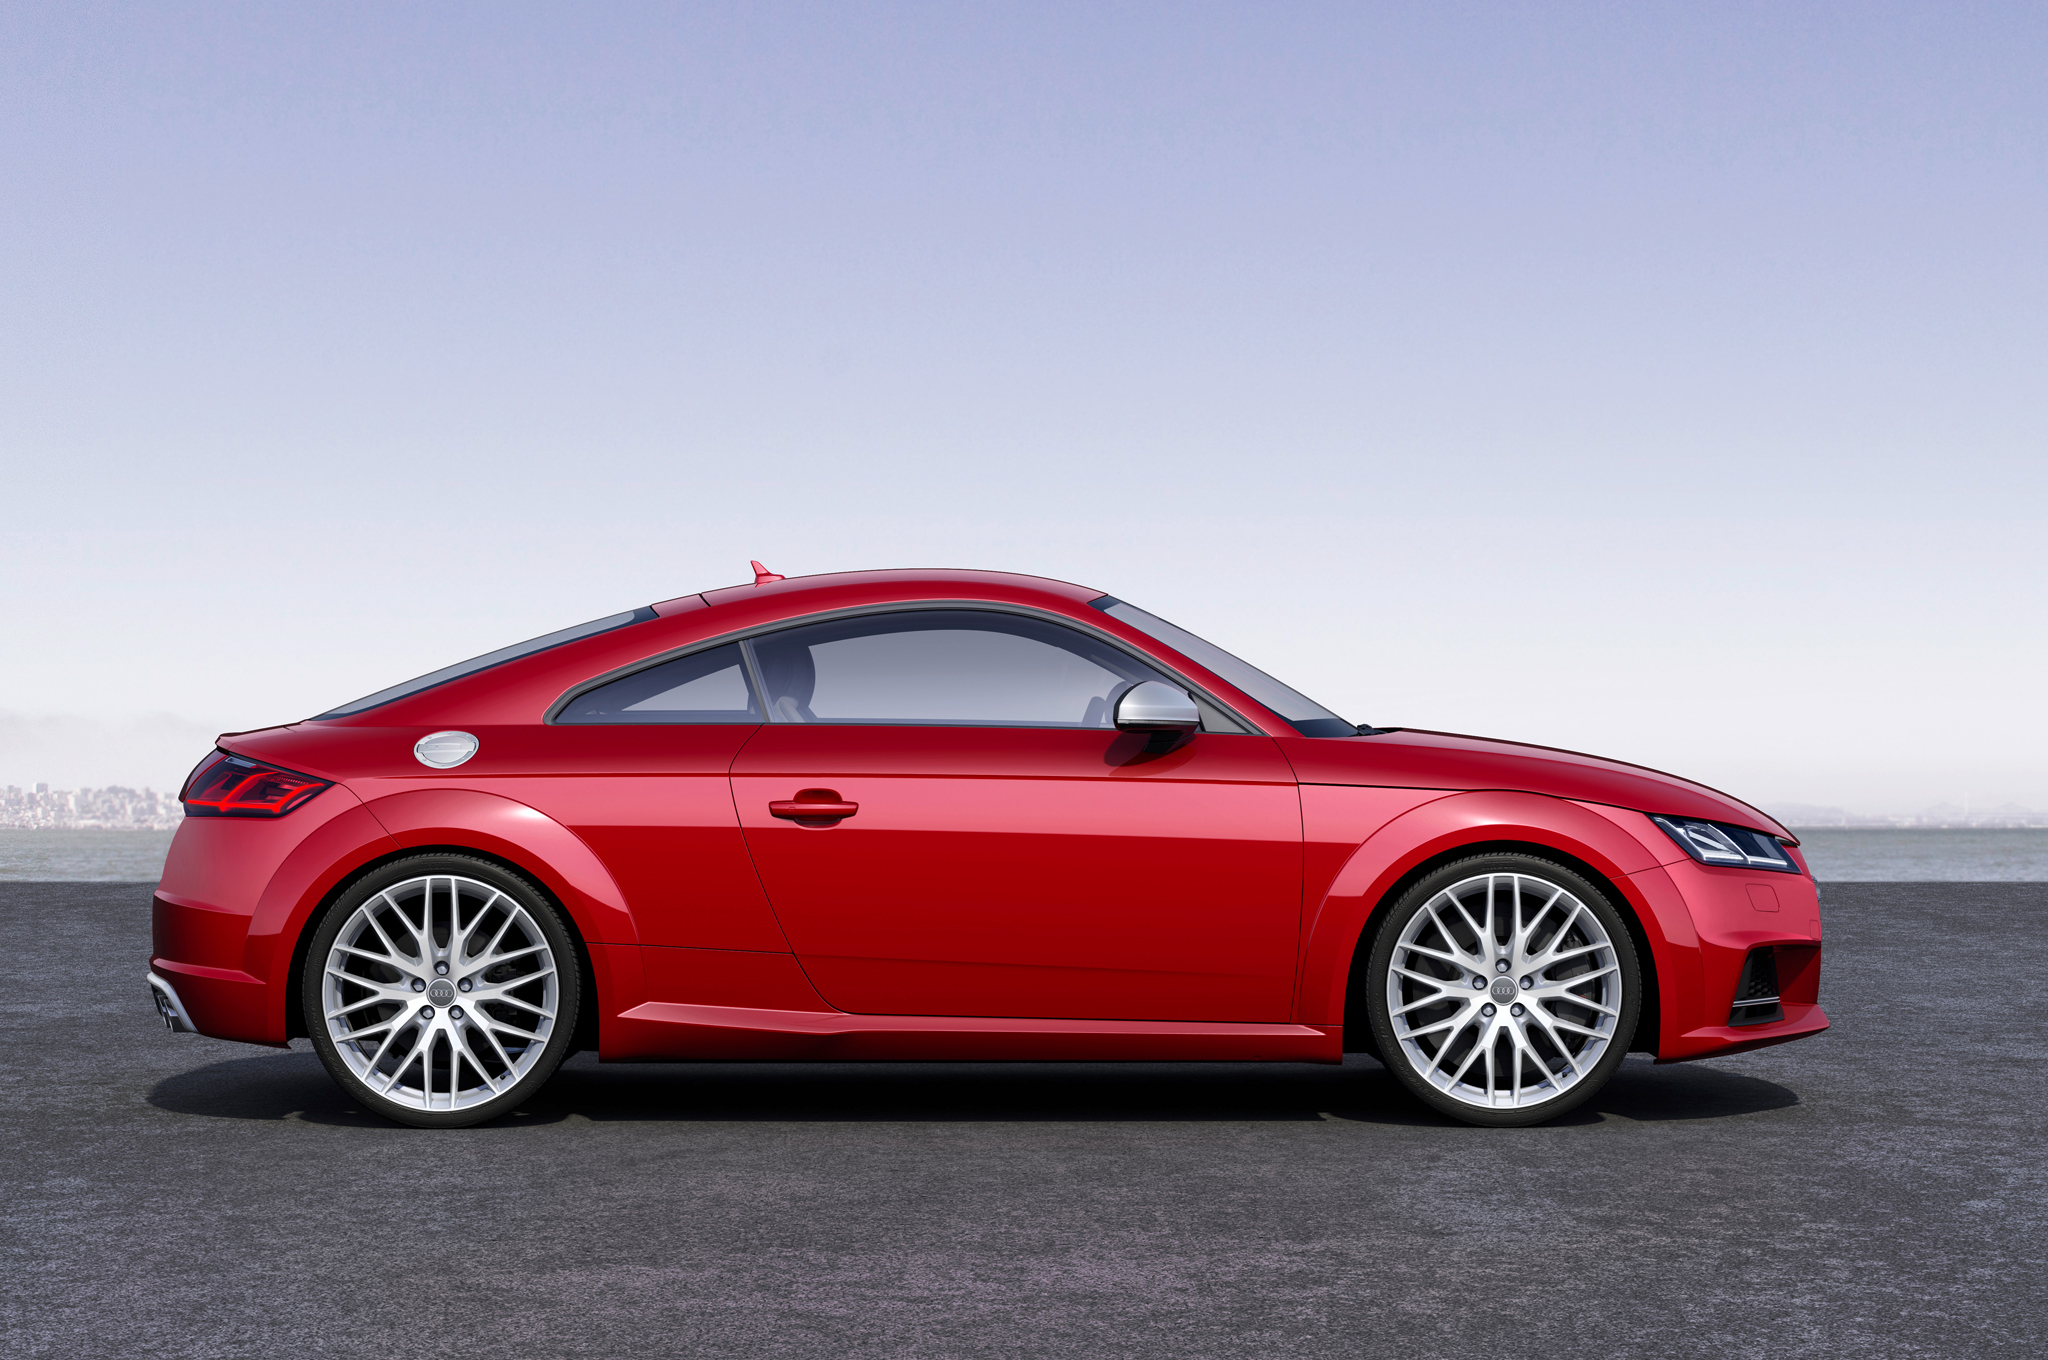 2016 Audi Tts Side Exterior View (Photo 39 of 41)